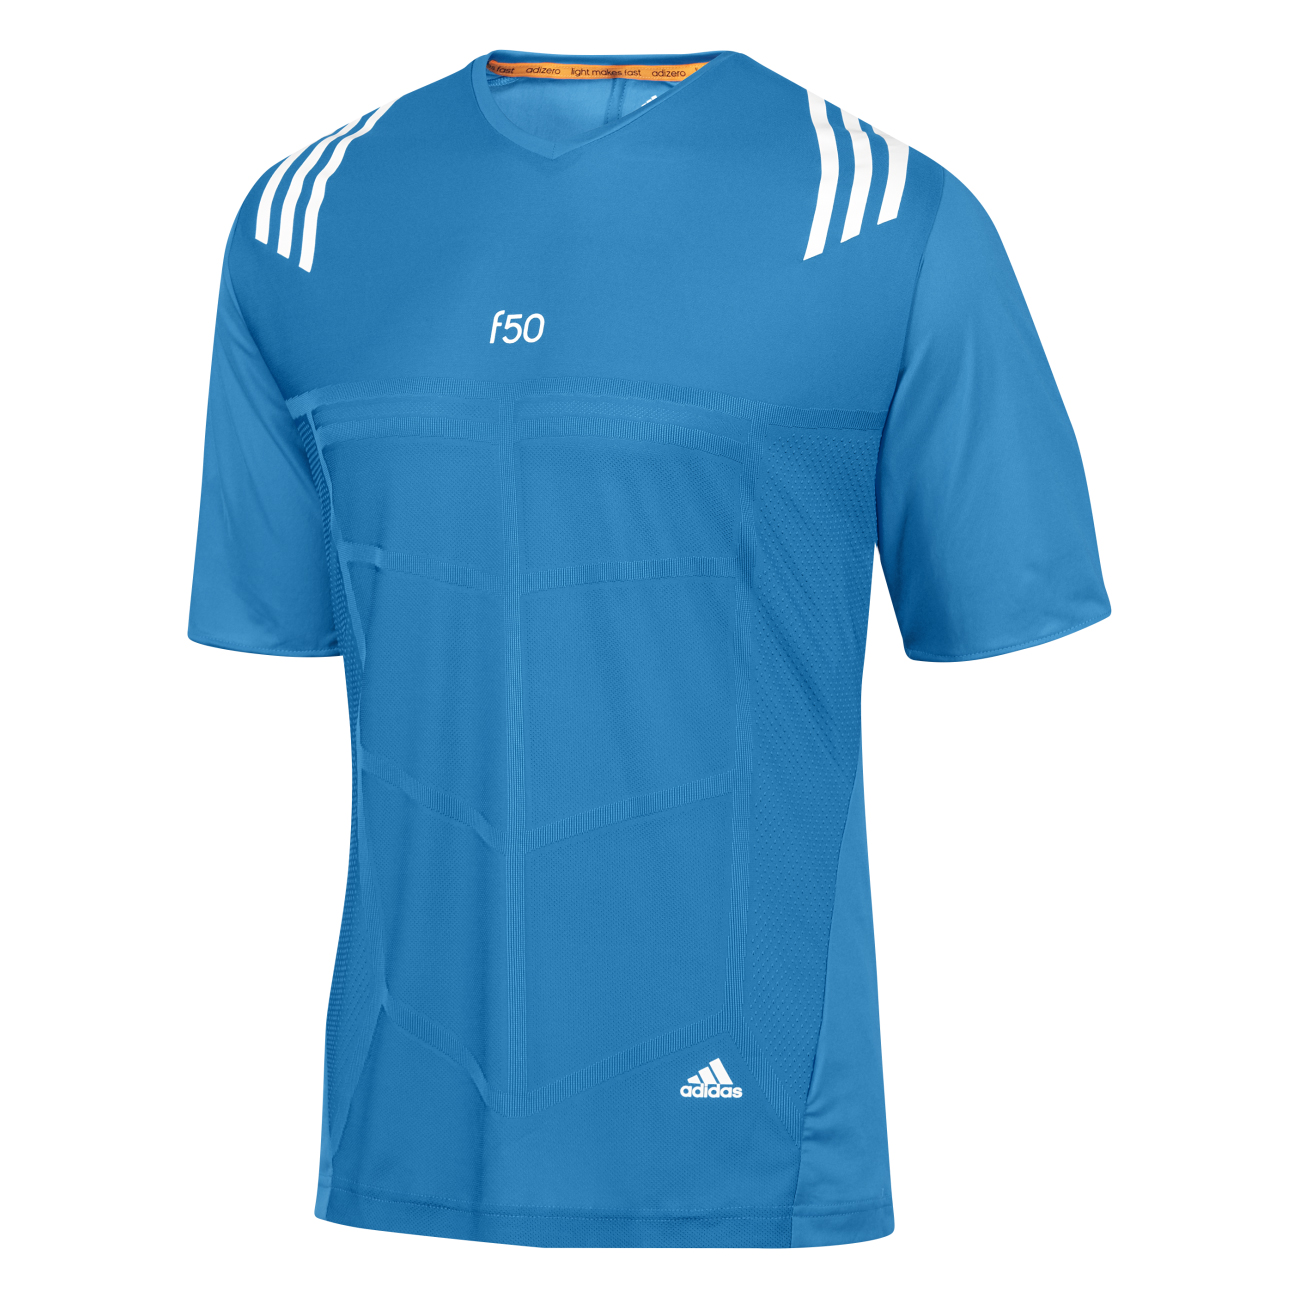 Adidas adiZero F50 Training T-Shirt Blue